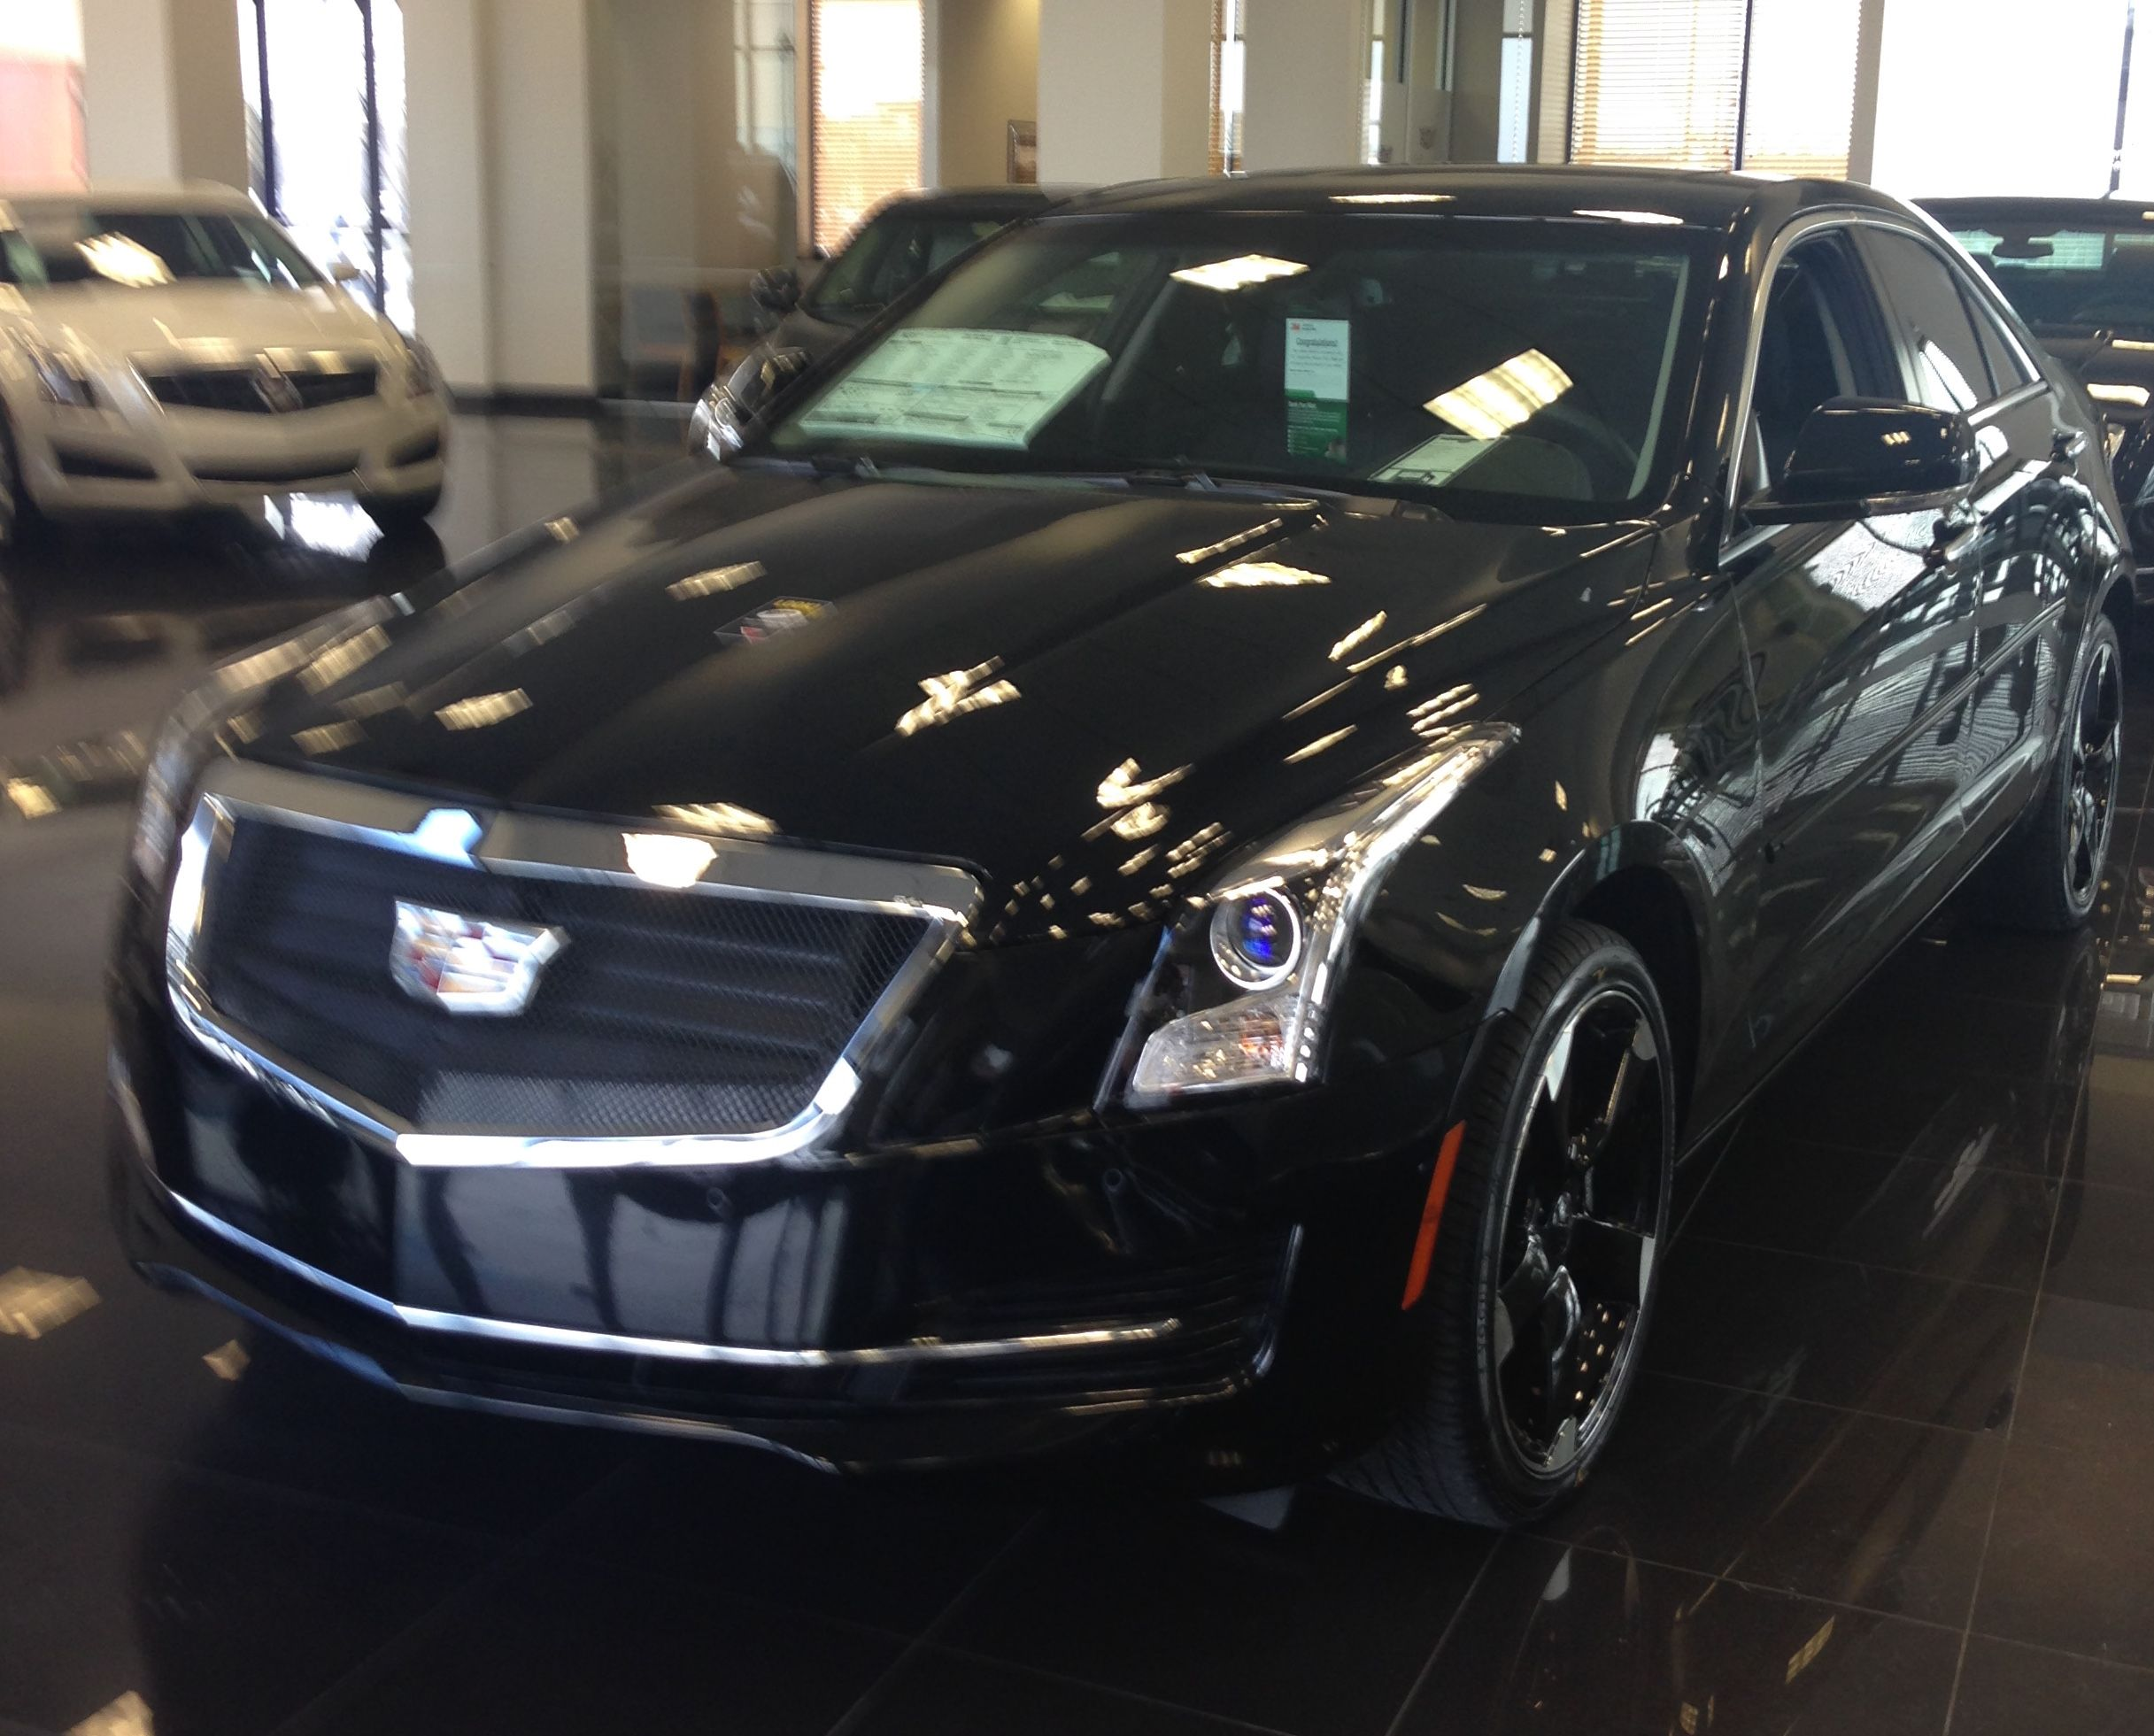 just arrived! new #cadillac ats onyx edition. #carlove #caddy